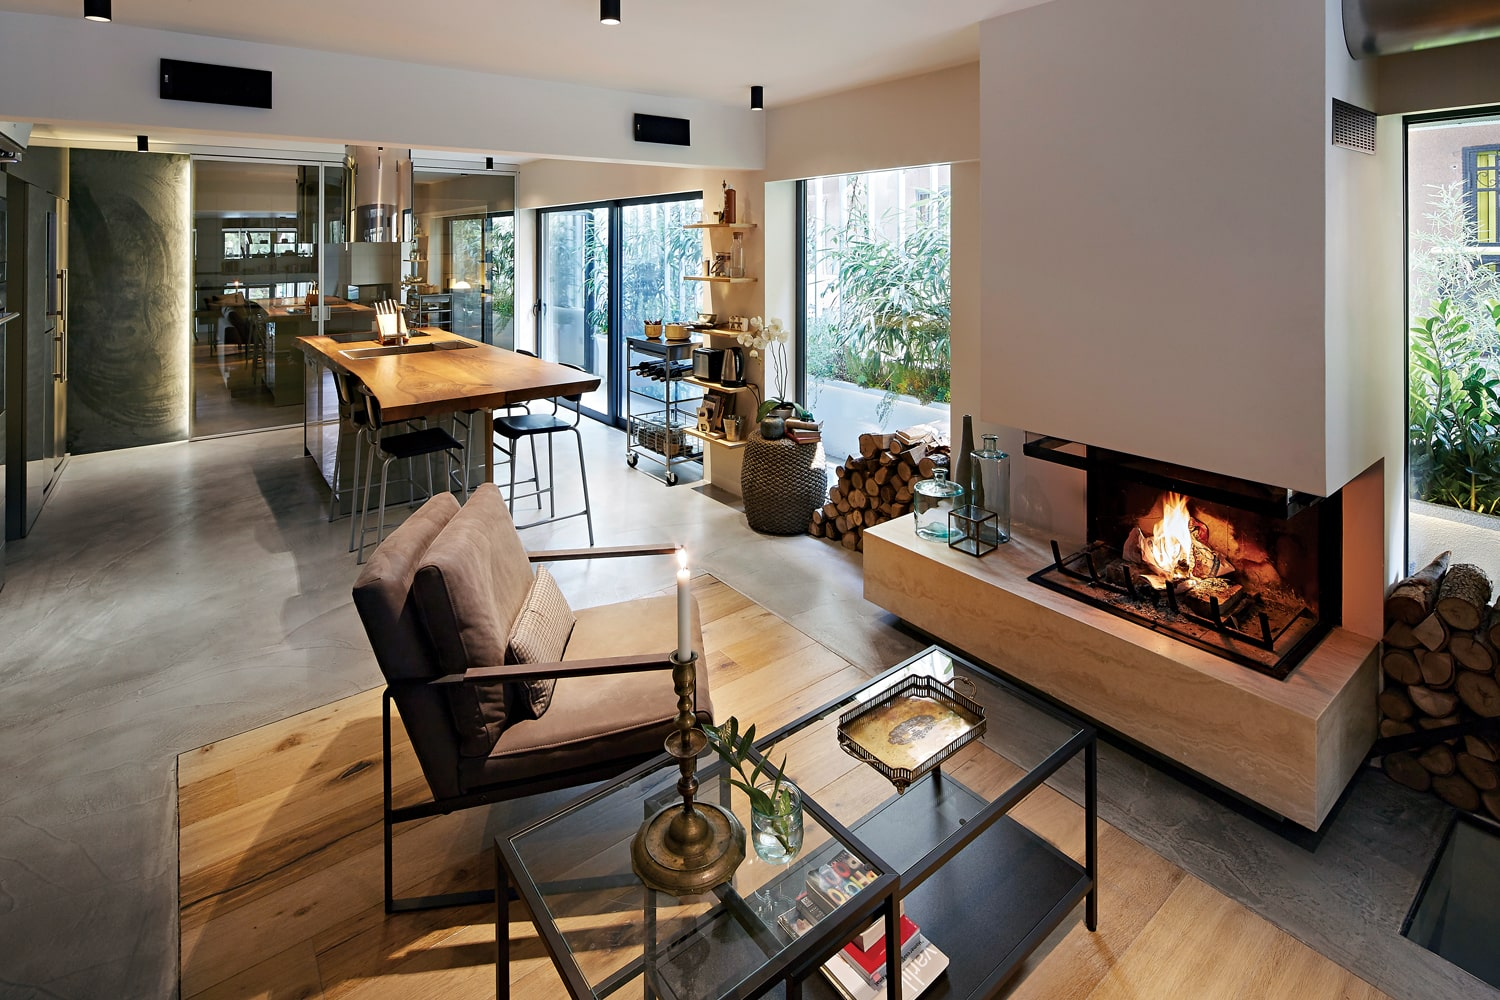 A close look at the living room shows that it has a couple of armchairs facing a modern fireplace embedded into the white wall beside the glass walls.